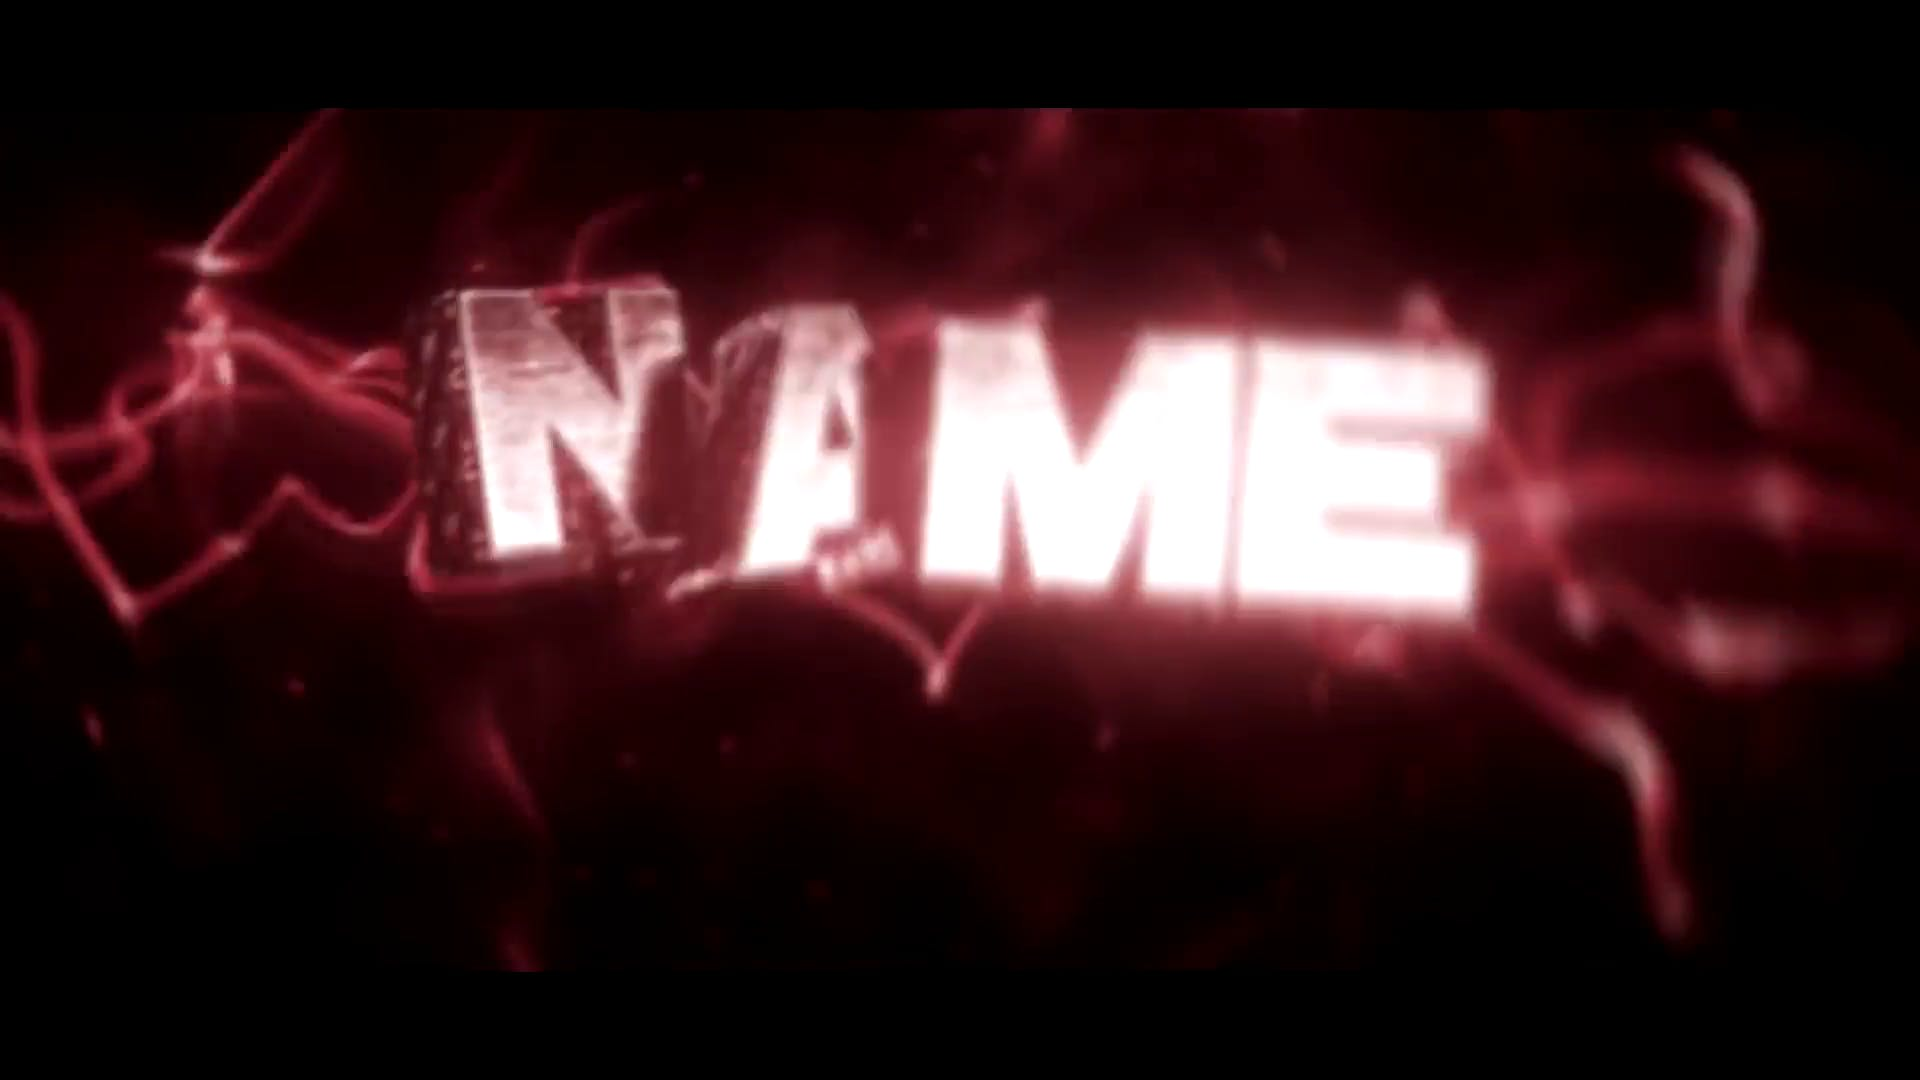 Shockwave Pulse Red Cinema 4D After Effects Intro Template FREE DOWNLOAD